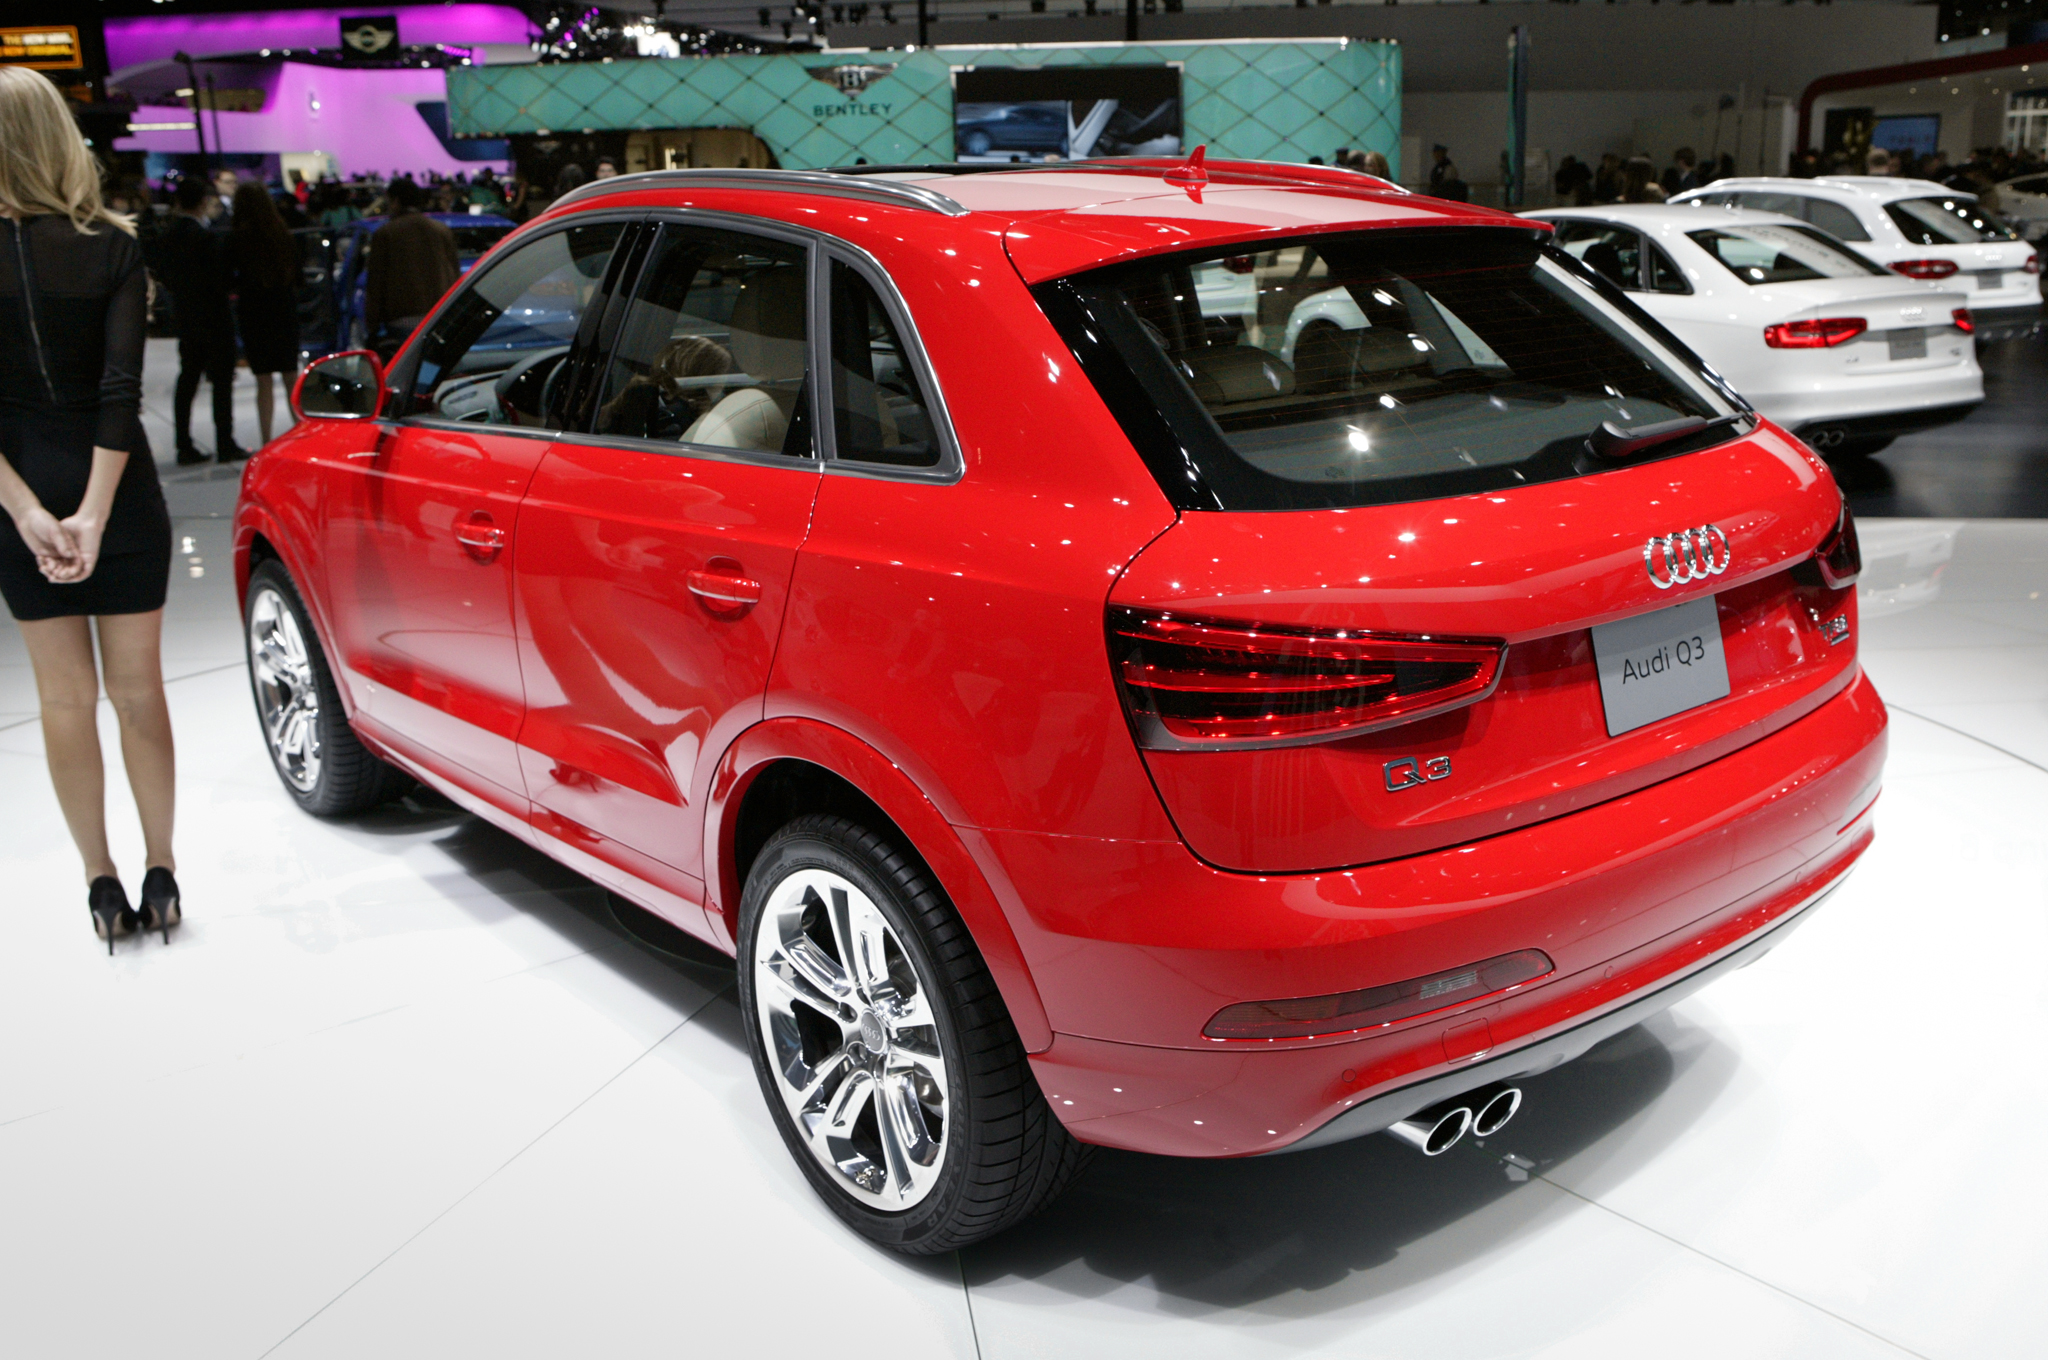 2015 Audi Q3 Car Show (Photo 2 of 21)